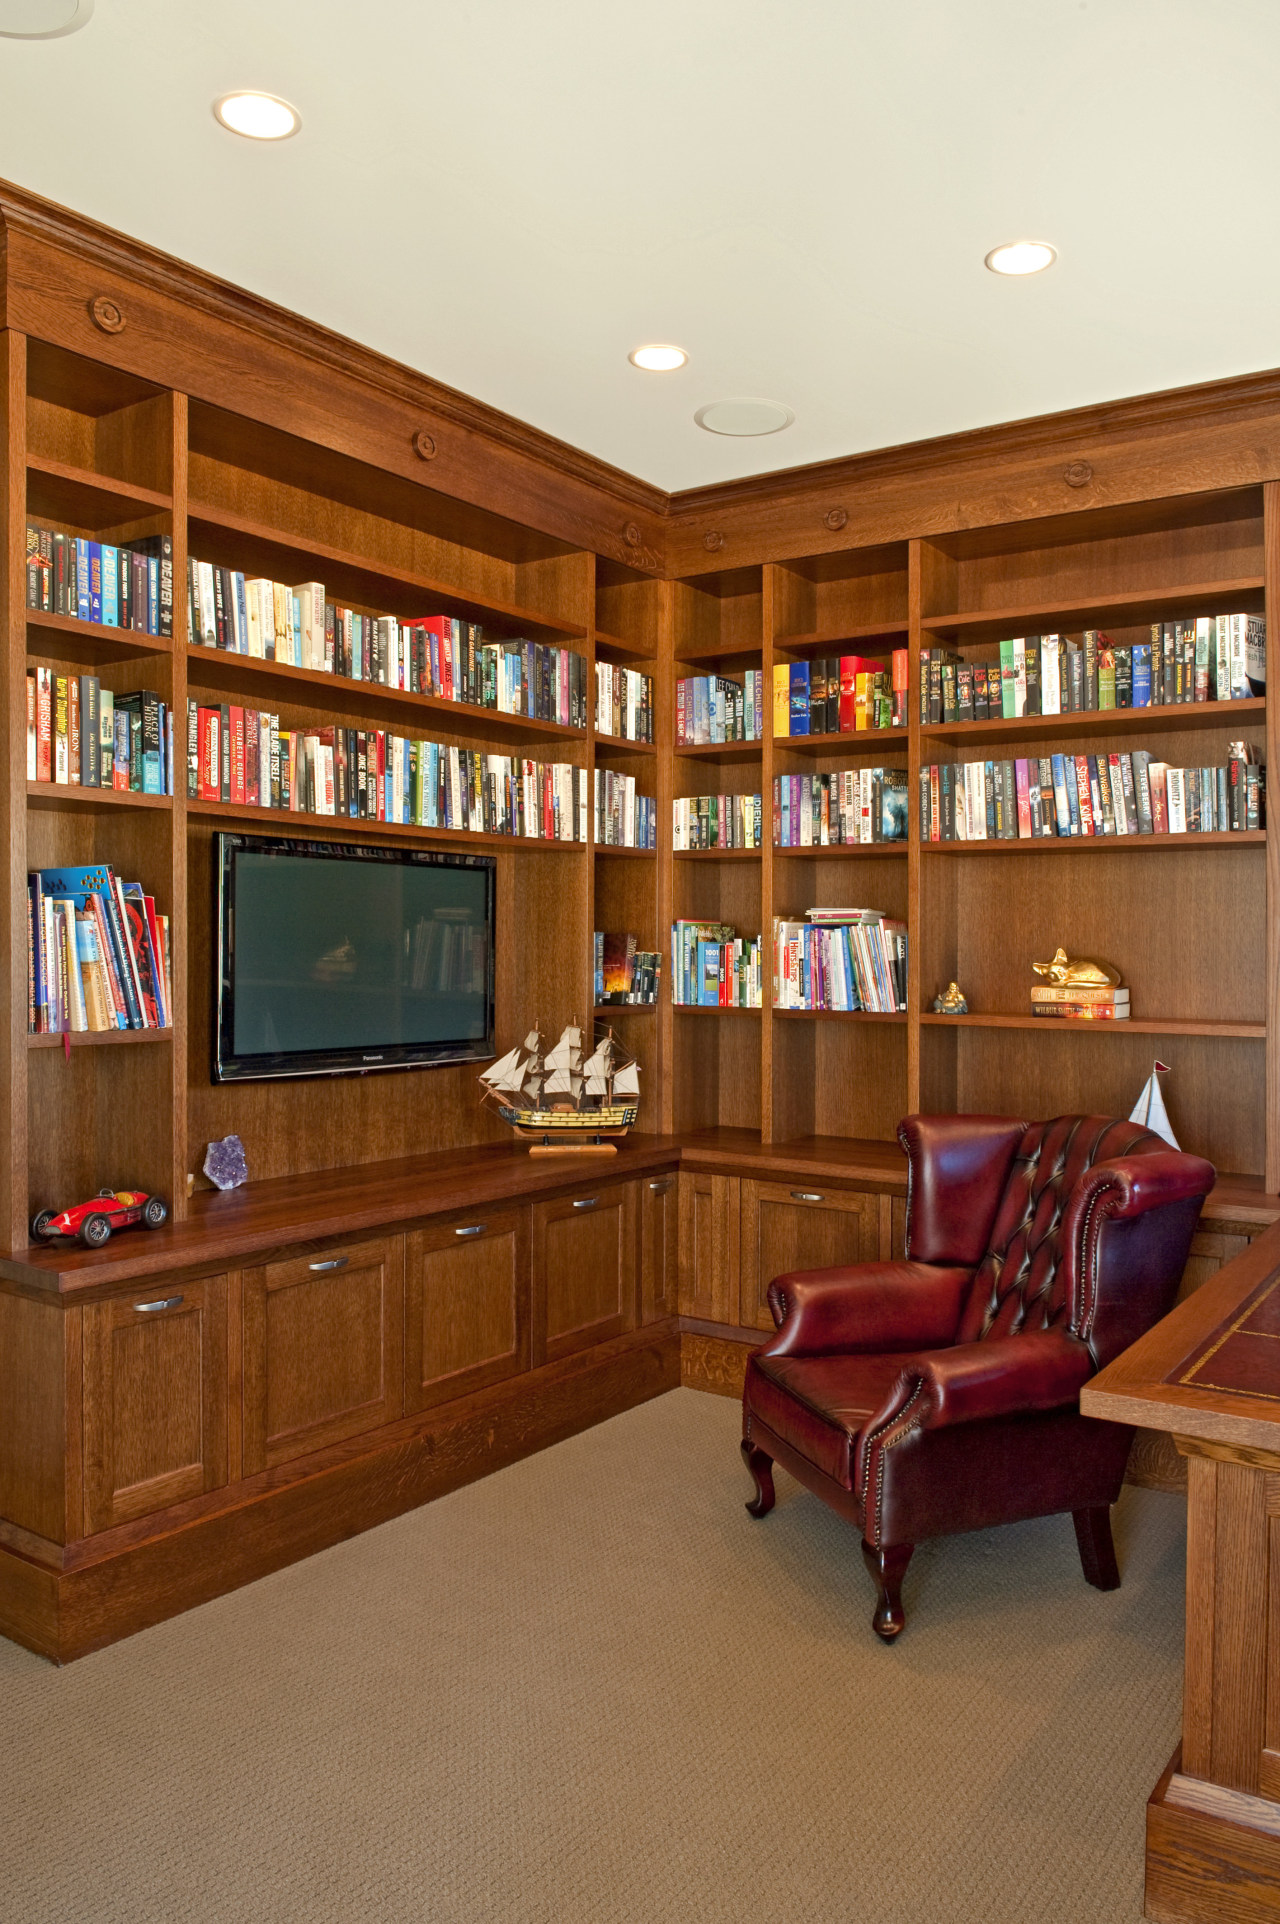 Fyfe Kitchens also designed and manufactured a library bookcase, cabinetry, furniture, home, interior design, living room, room, shelving, brown